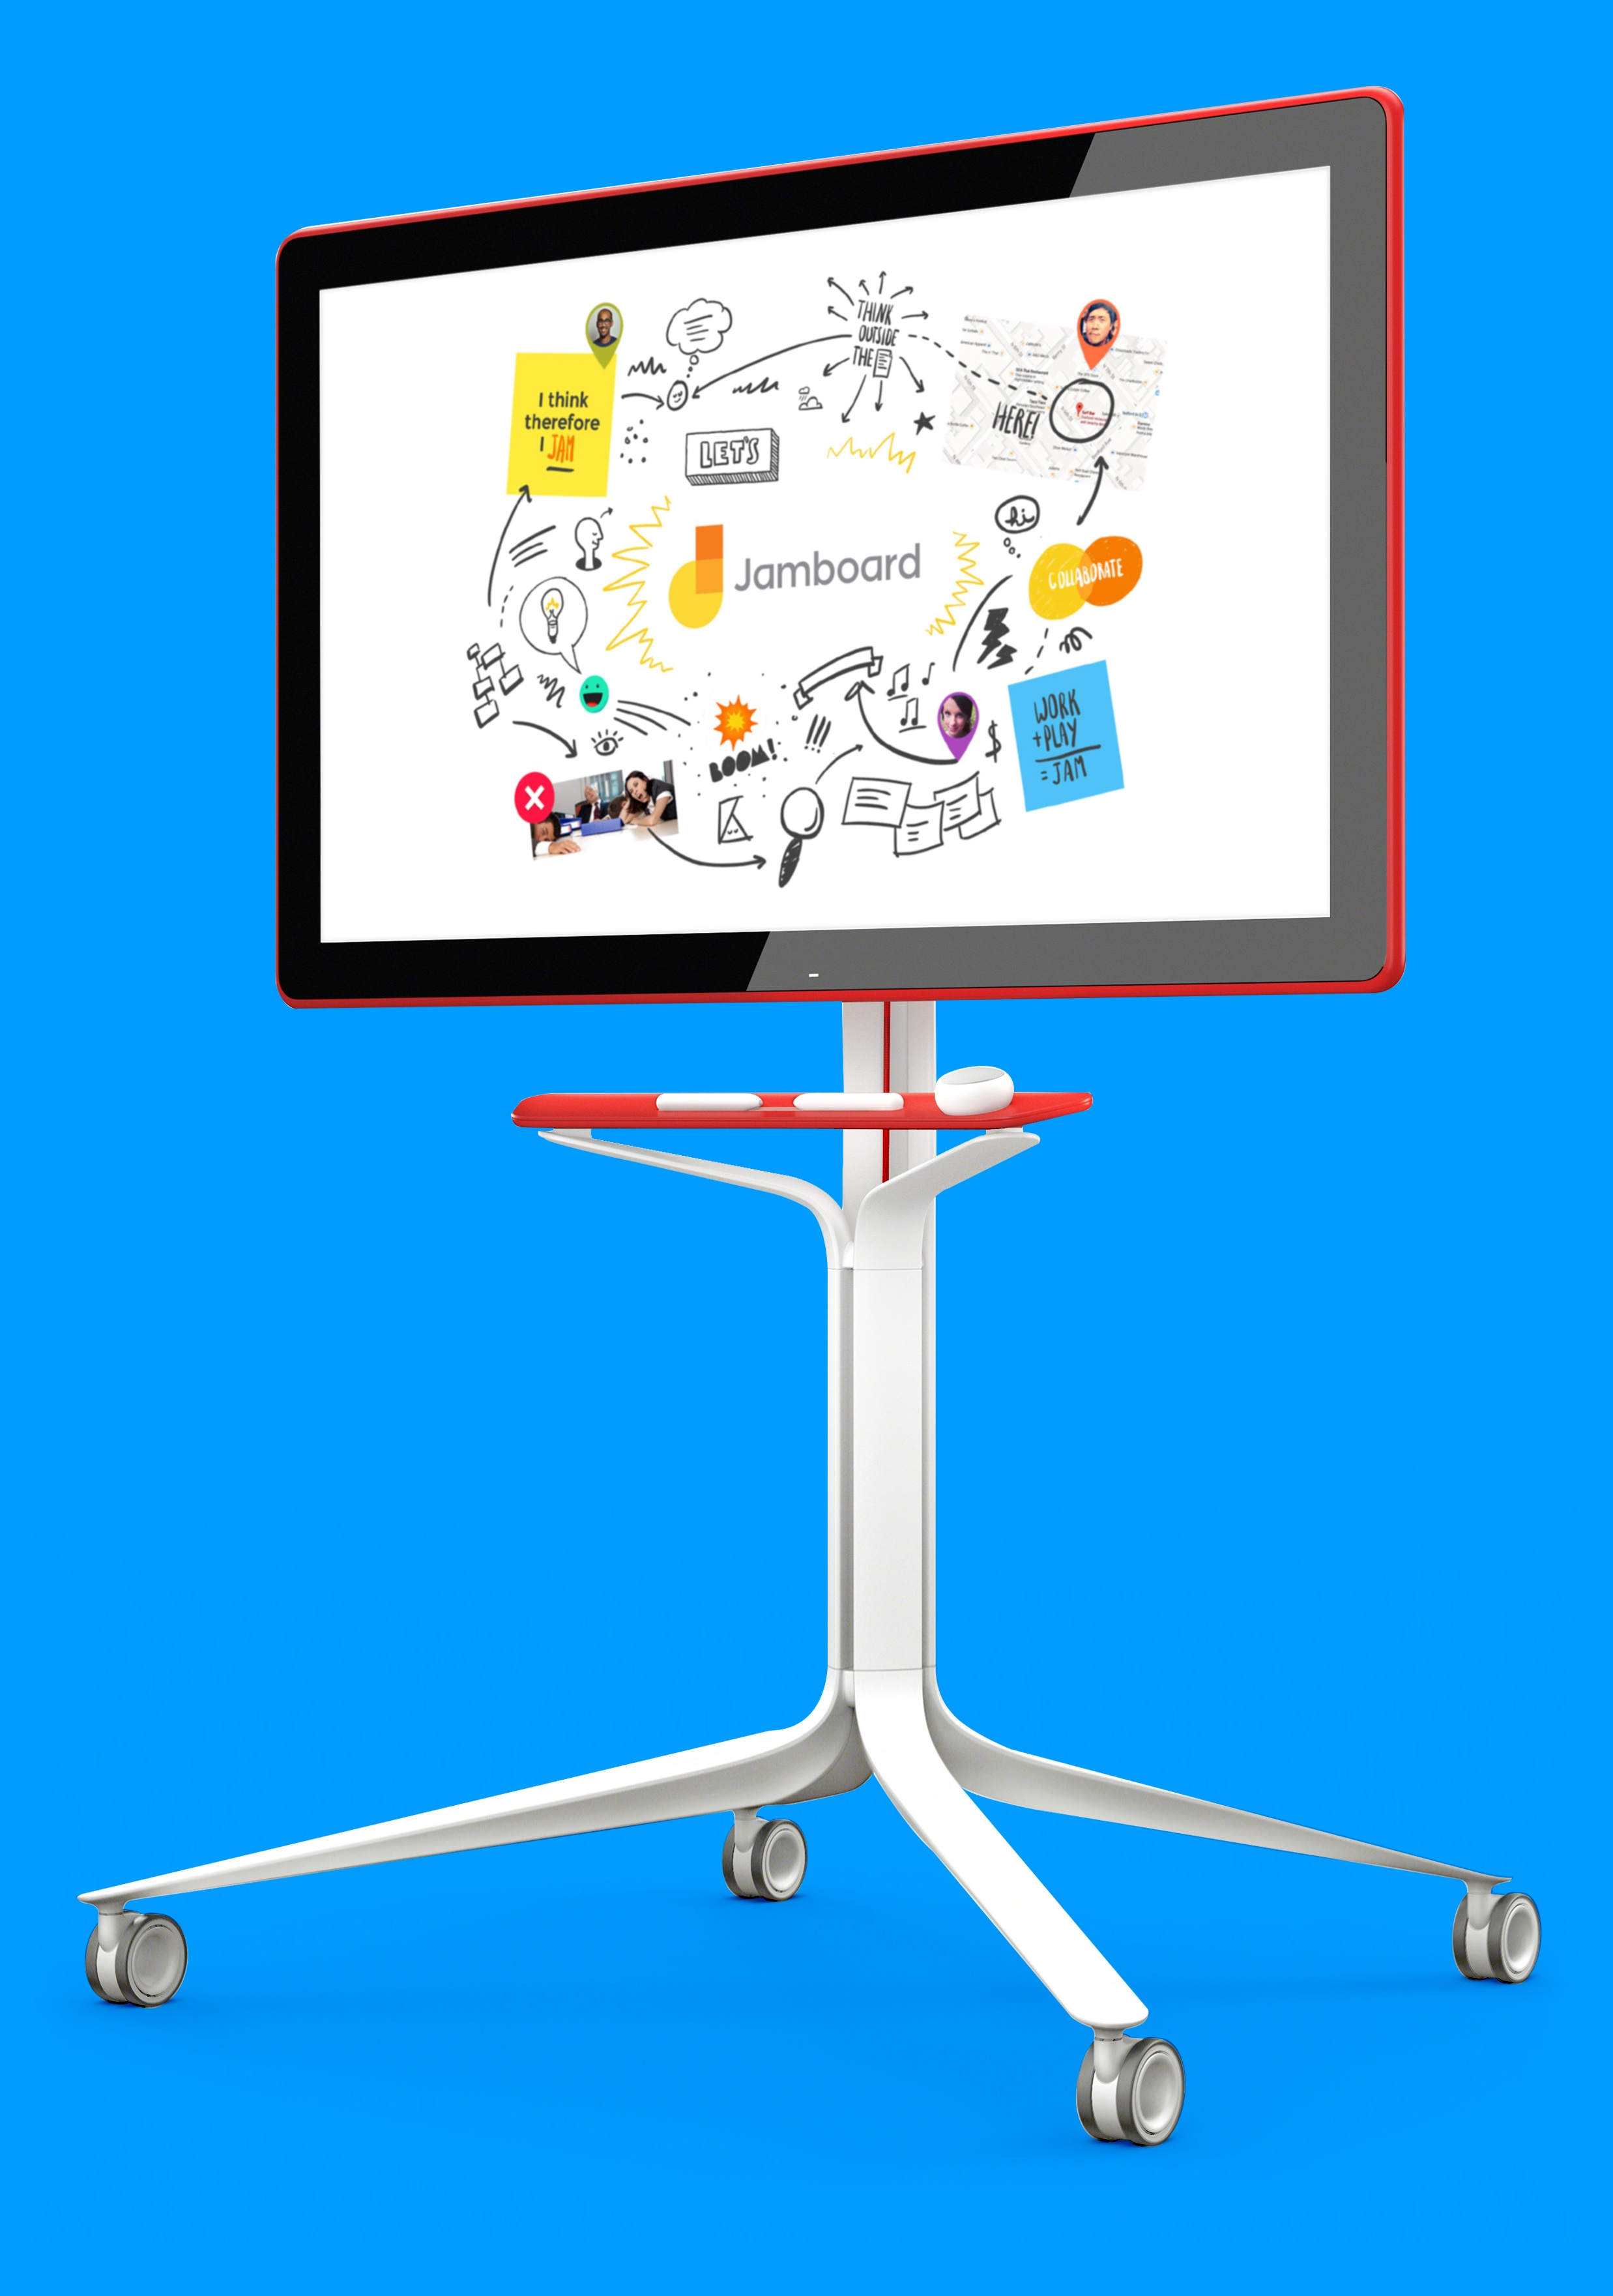 Jamboard Cut Out-1